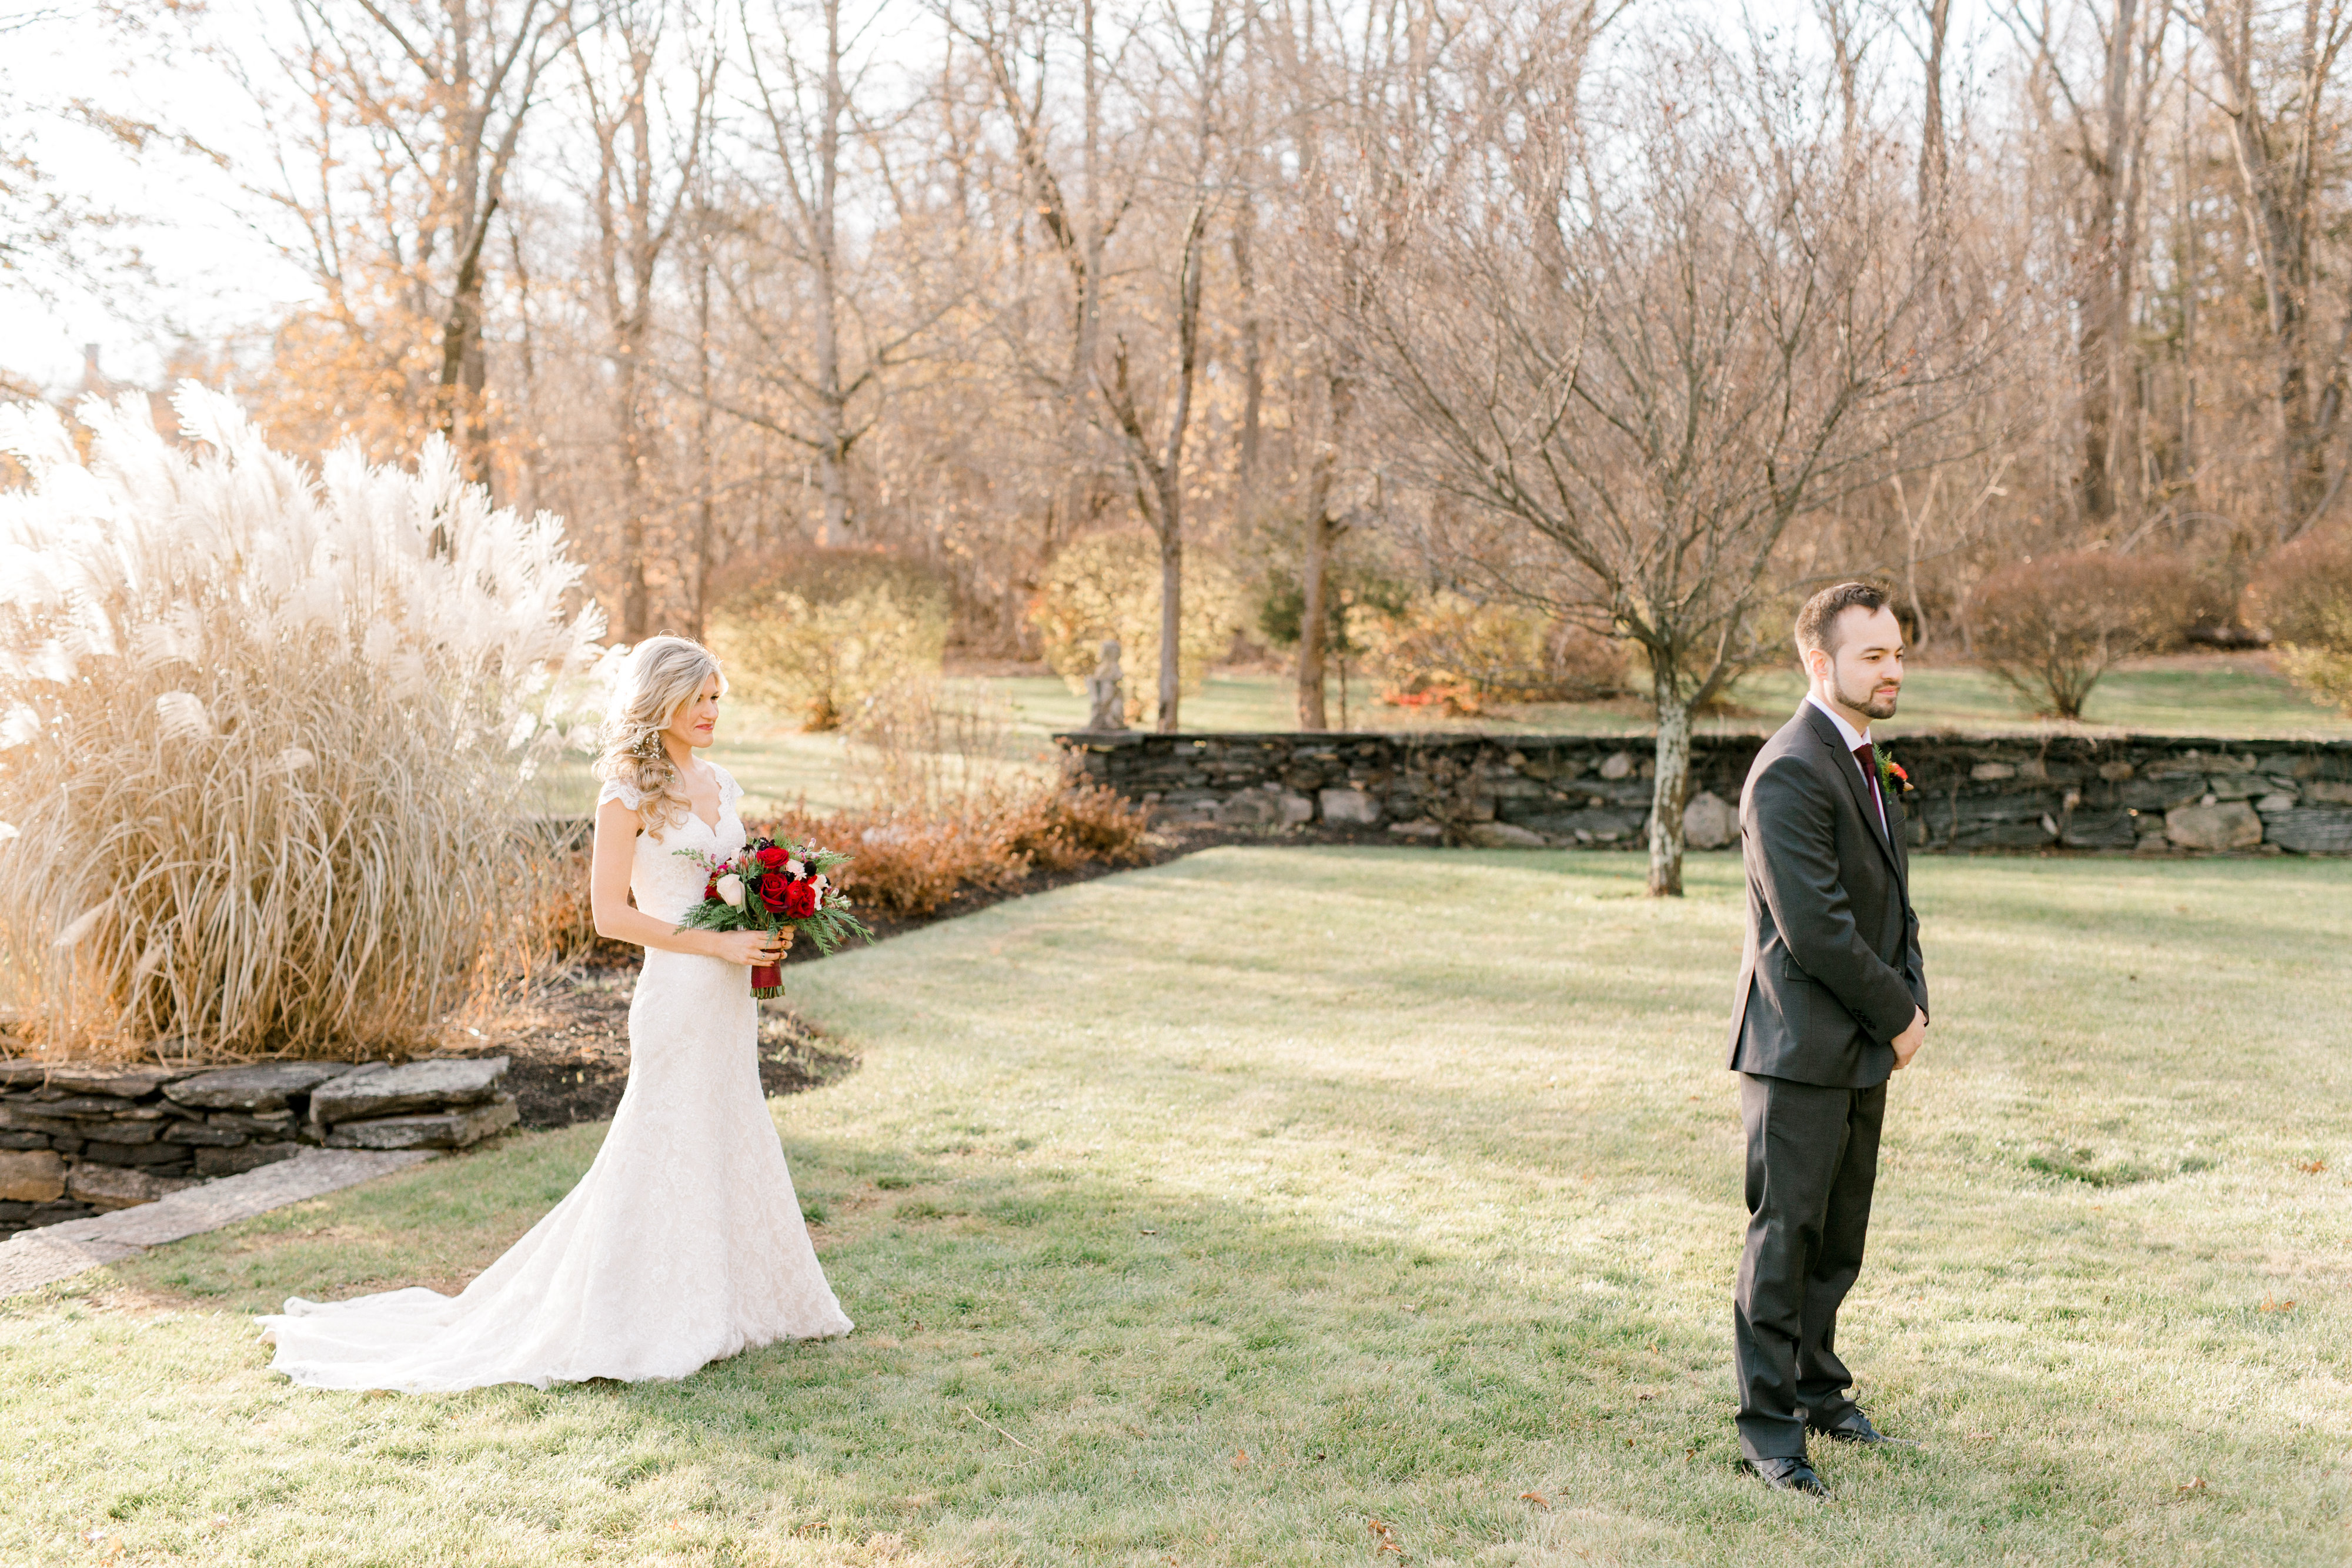 Wedding banquet event ct united states saint clements castle daphne and dean photography junglespirit Image collections